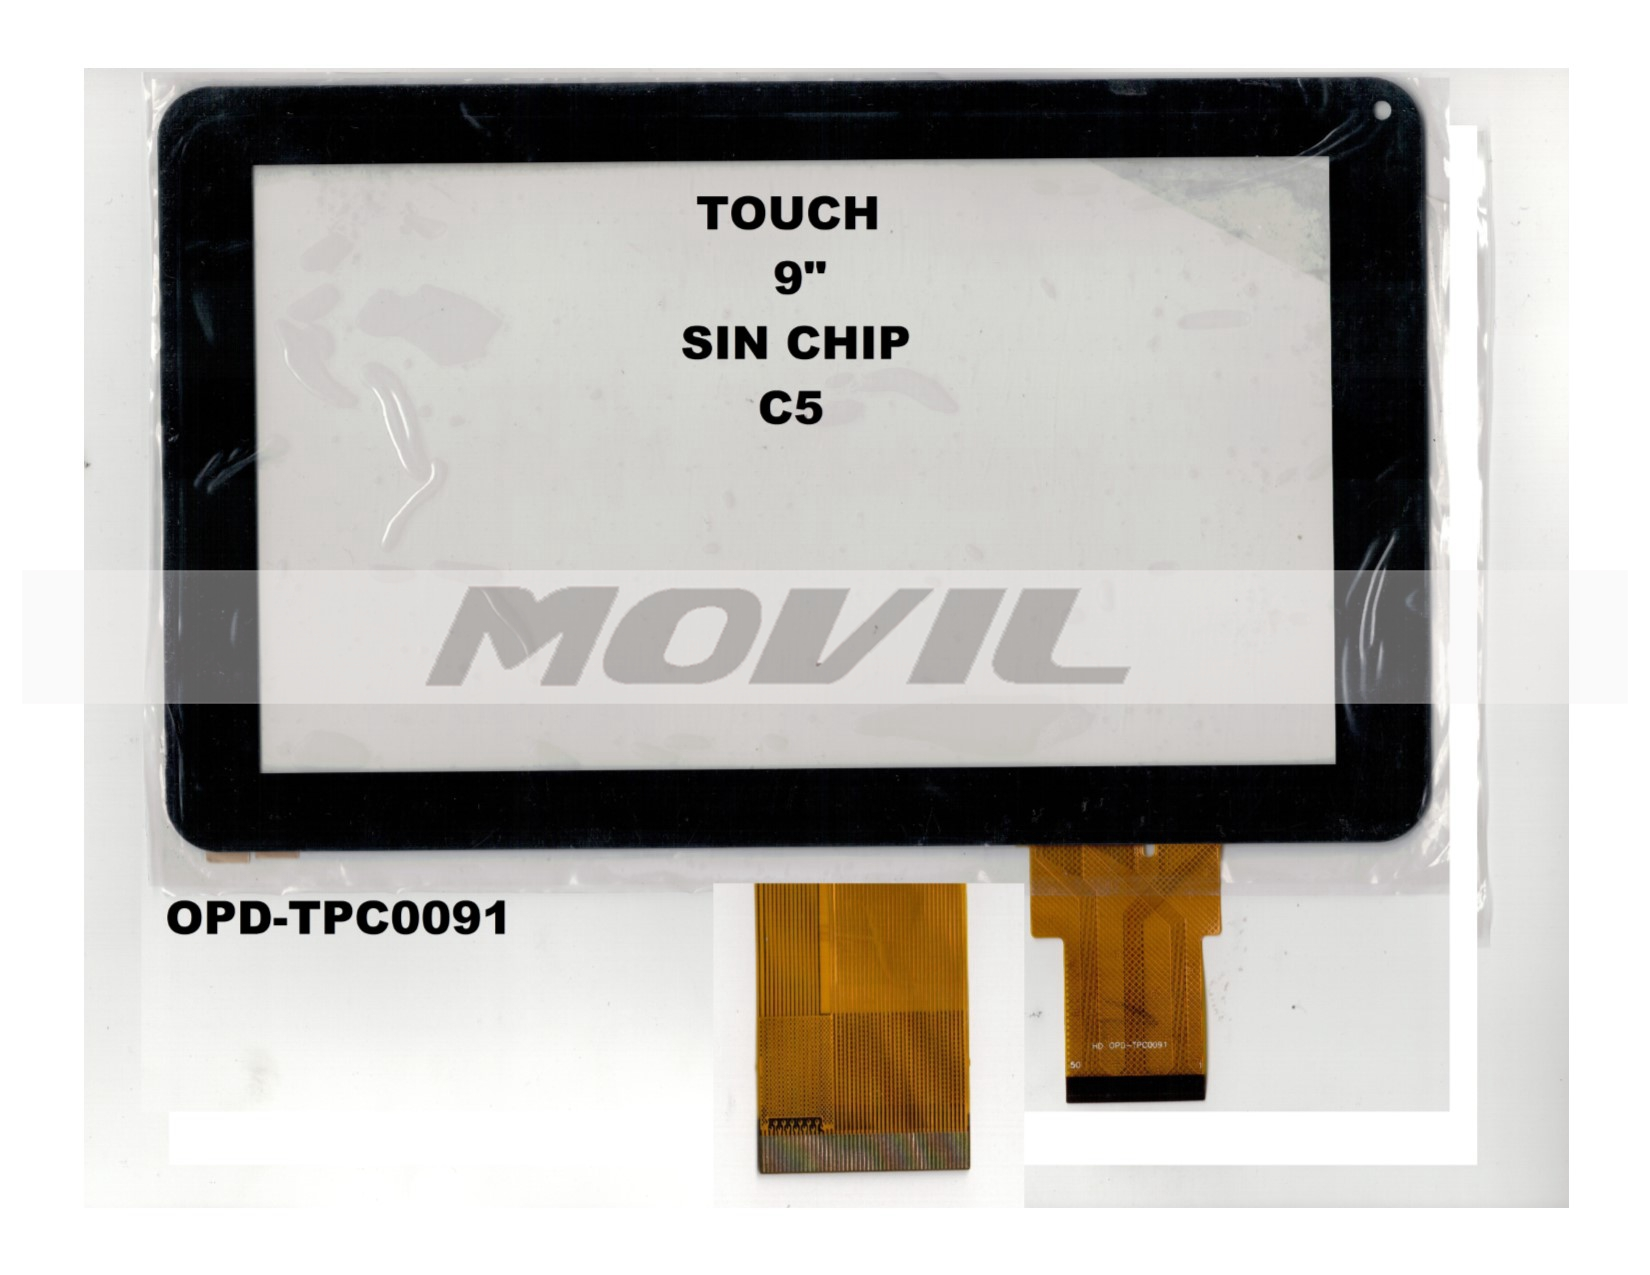 Touch tactil para tablet flex 9 inch SIN CHIP C5 OPD-TPC0091